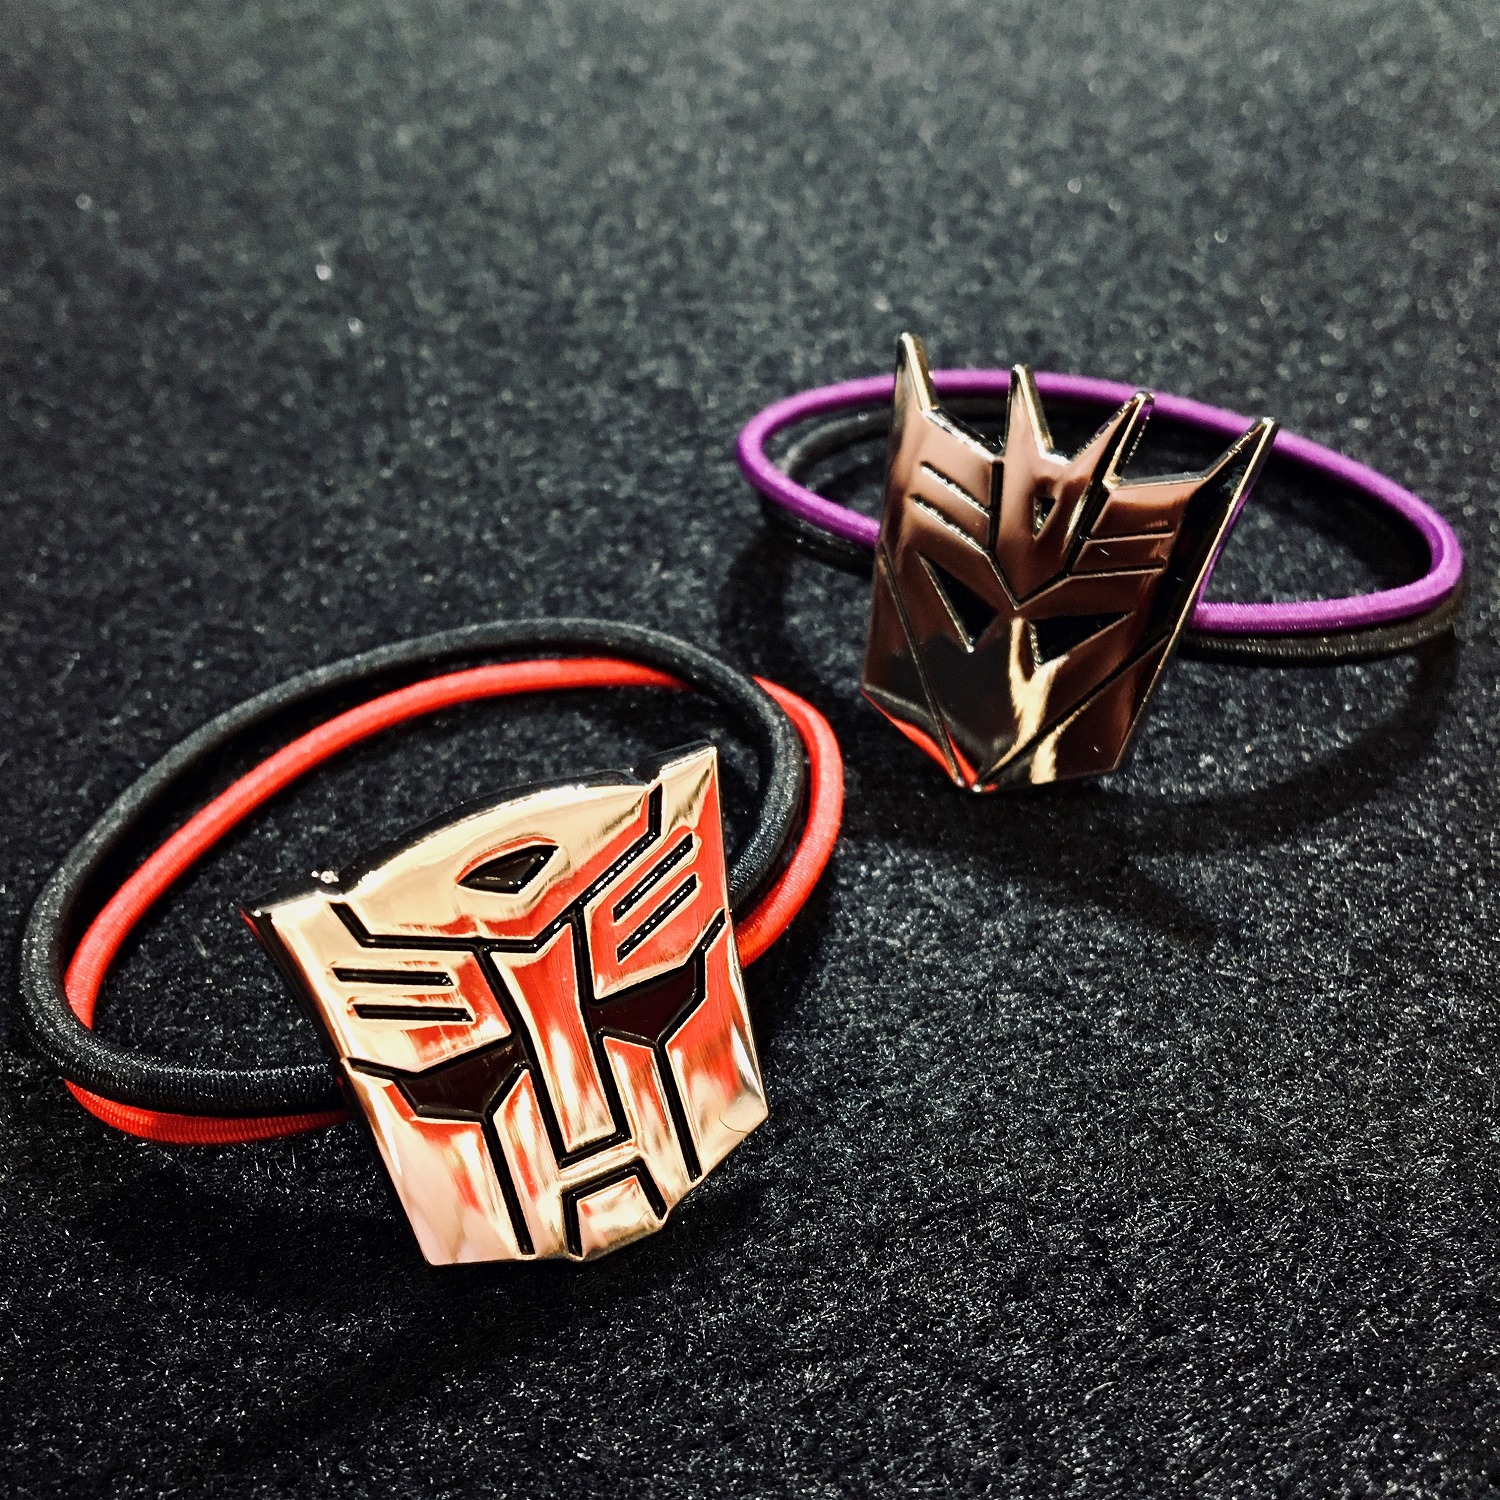 14-Prime 1 Studio Transformers Hair elastic.jpg